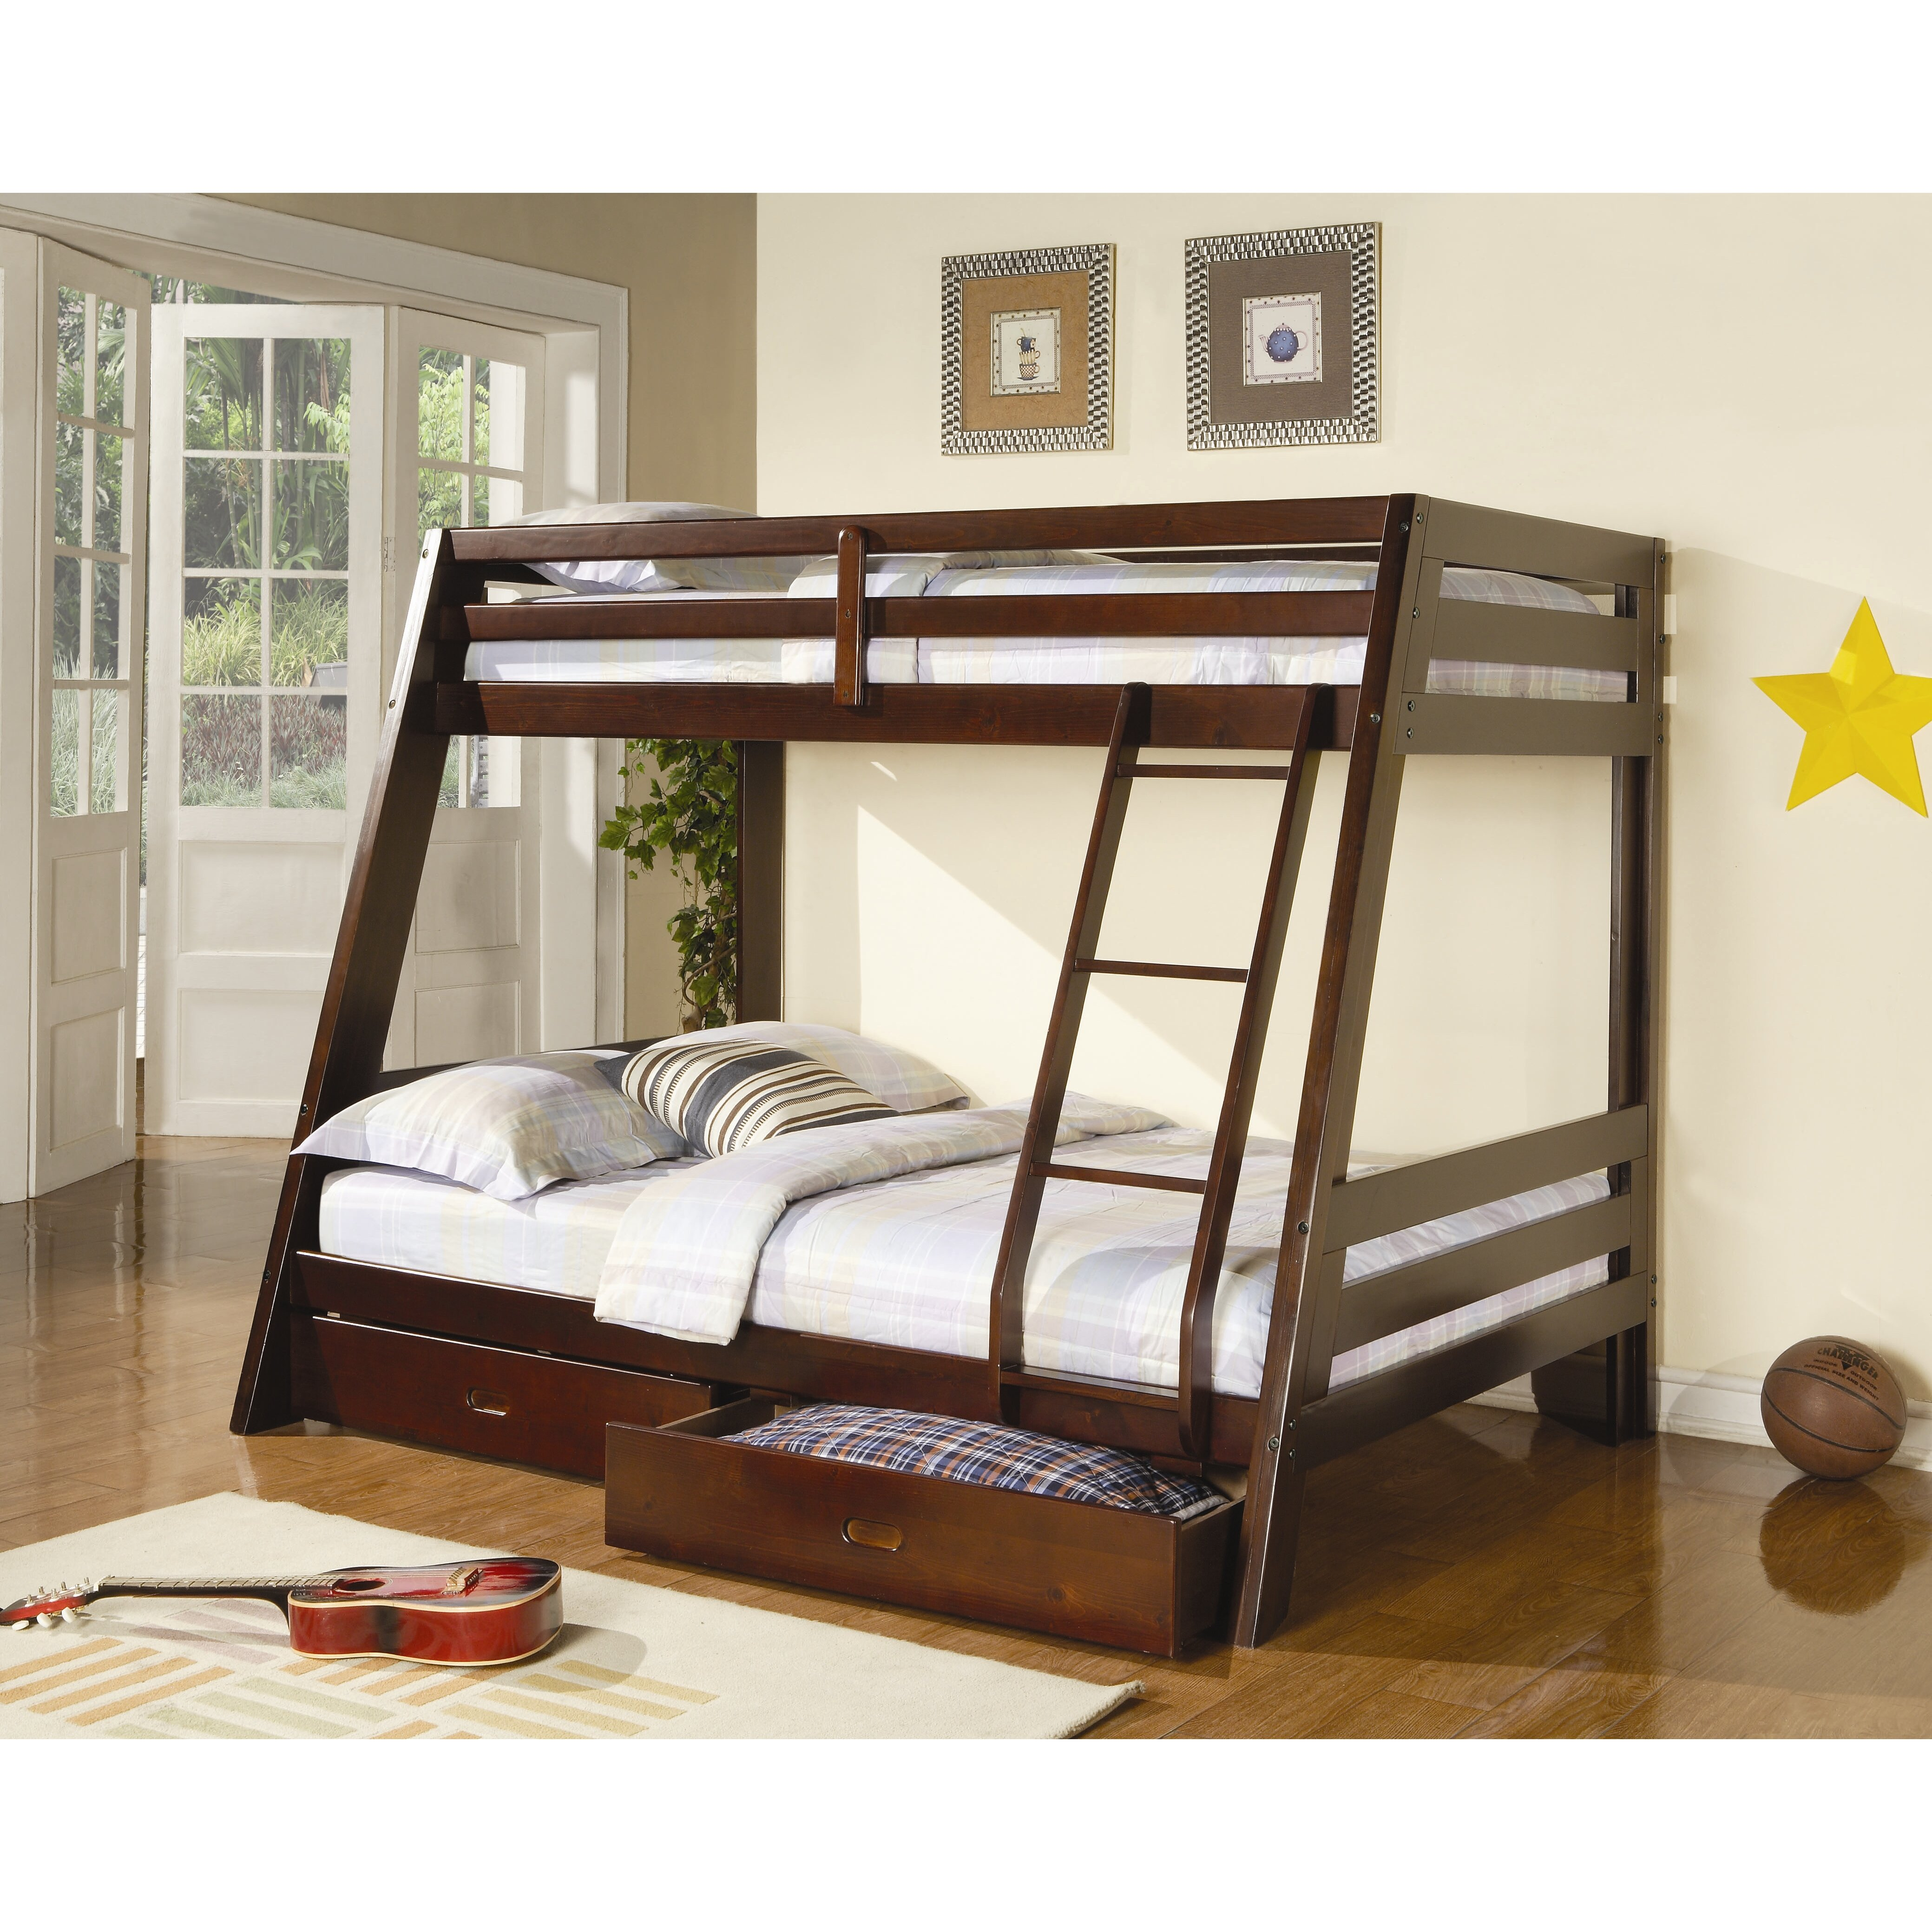 Best 25 Twin Full Bunk Bed Ideas On Pinterest: Wildon Home ® Mullin Twin Over Full Bunk Bed With Storage